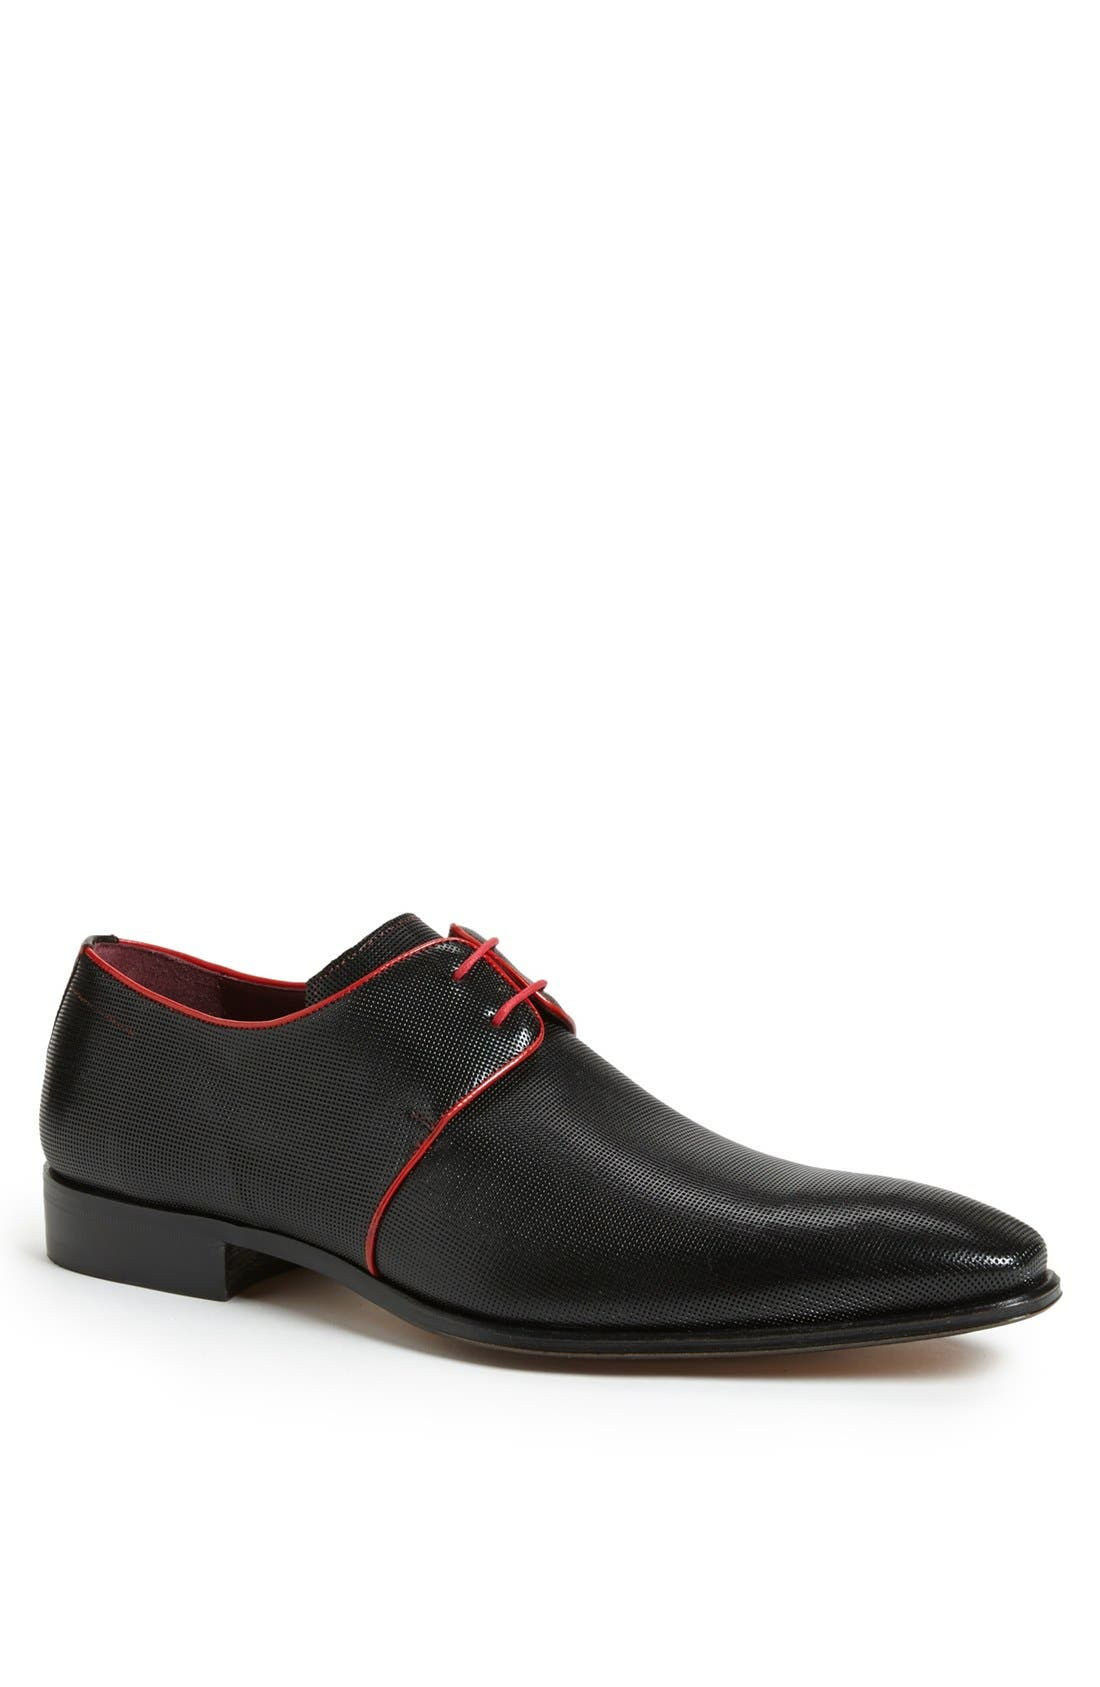 Main Image - Mezlan 'Donizetti' Plain Toe Derby